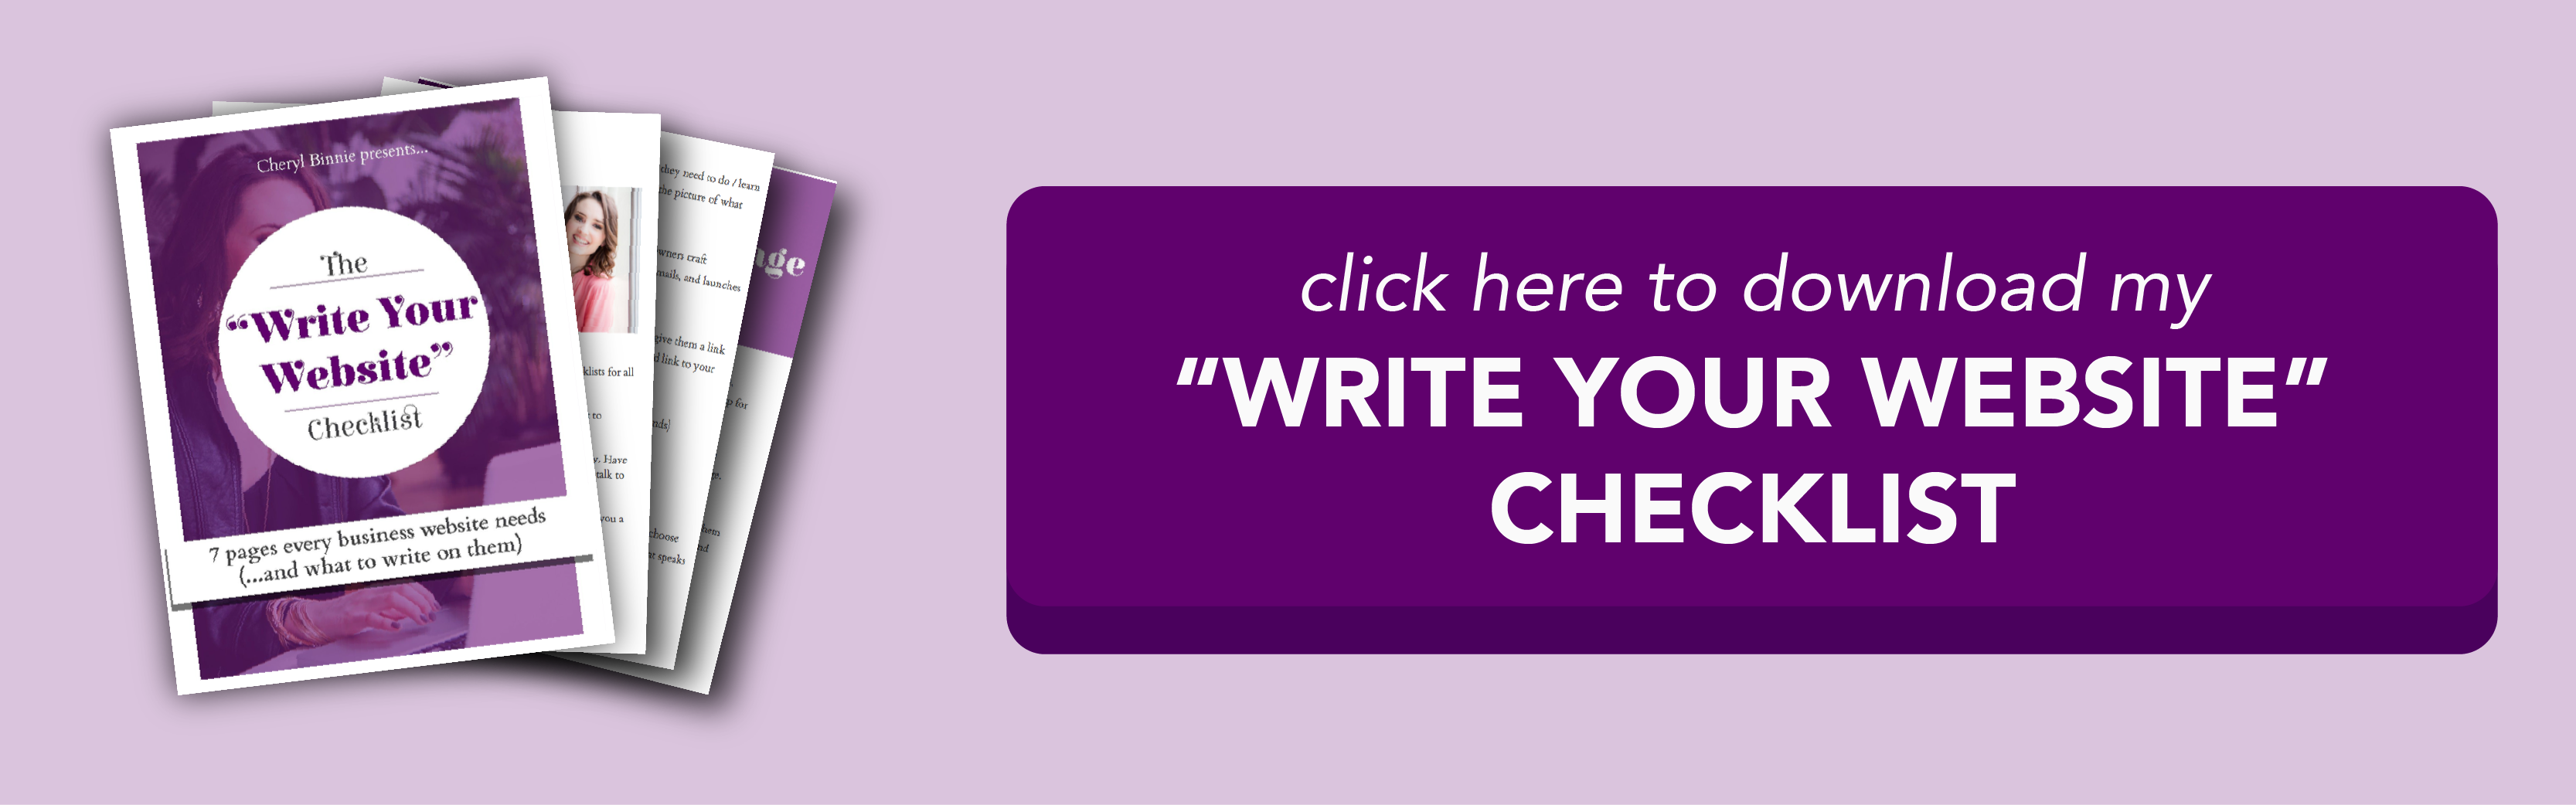 Click here to get the Write Your Website Checklist